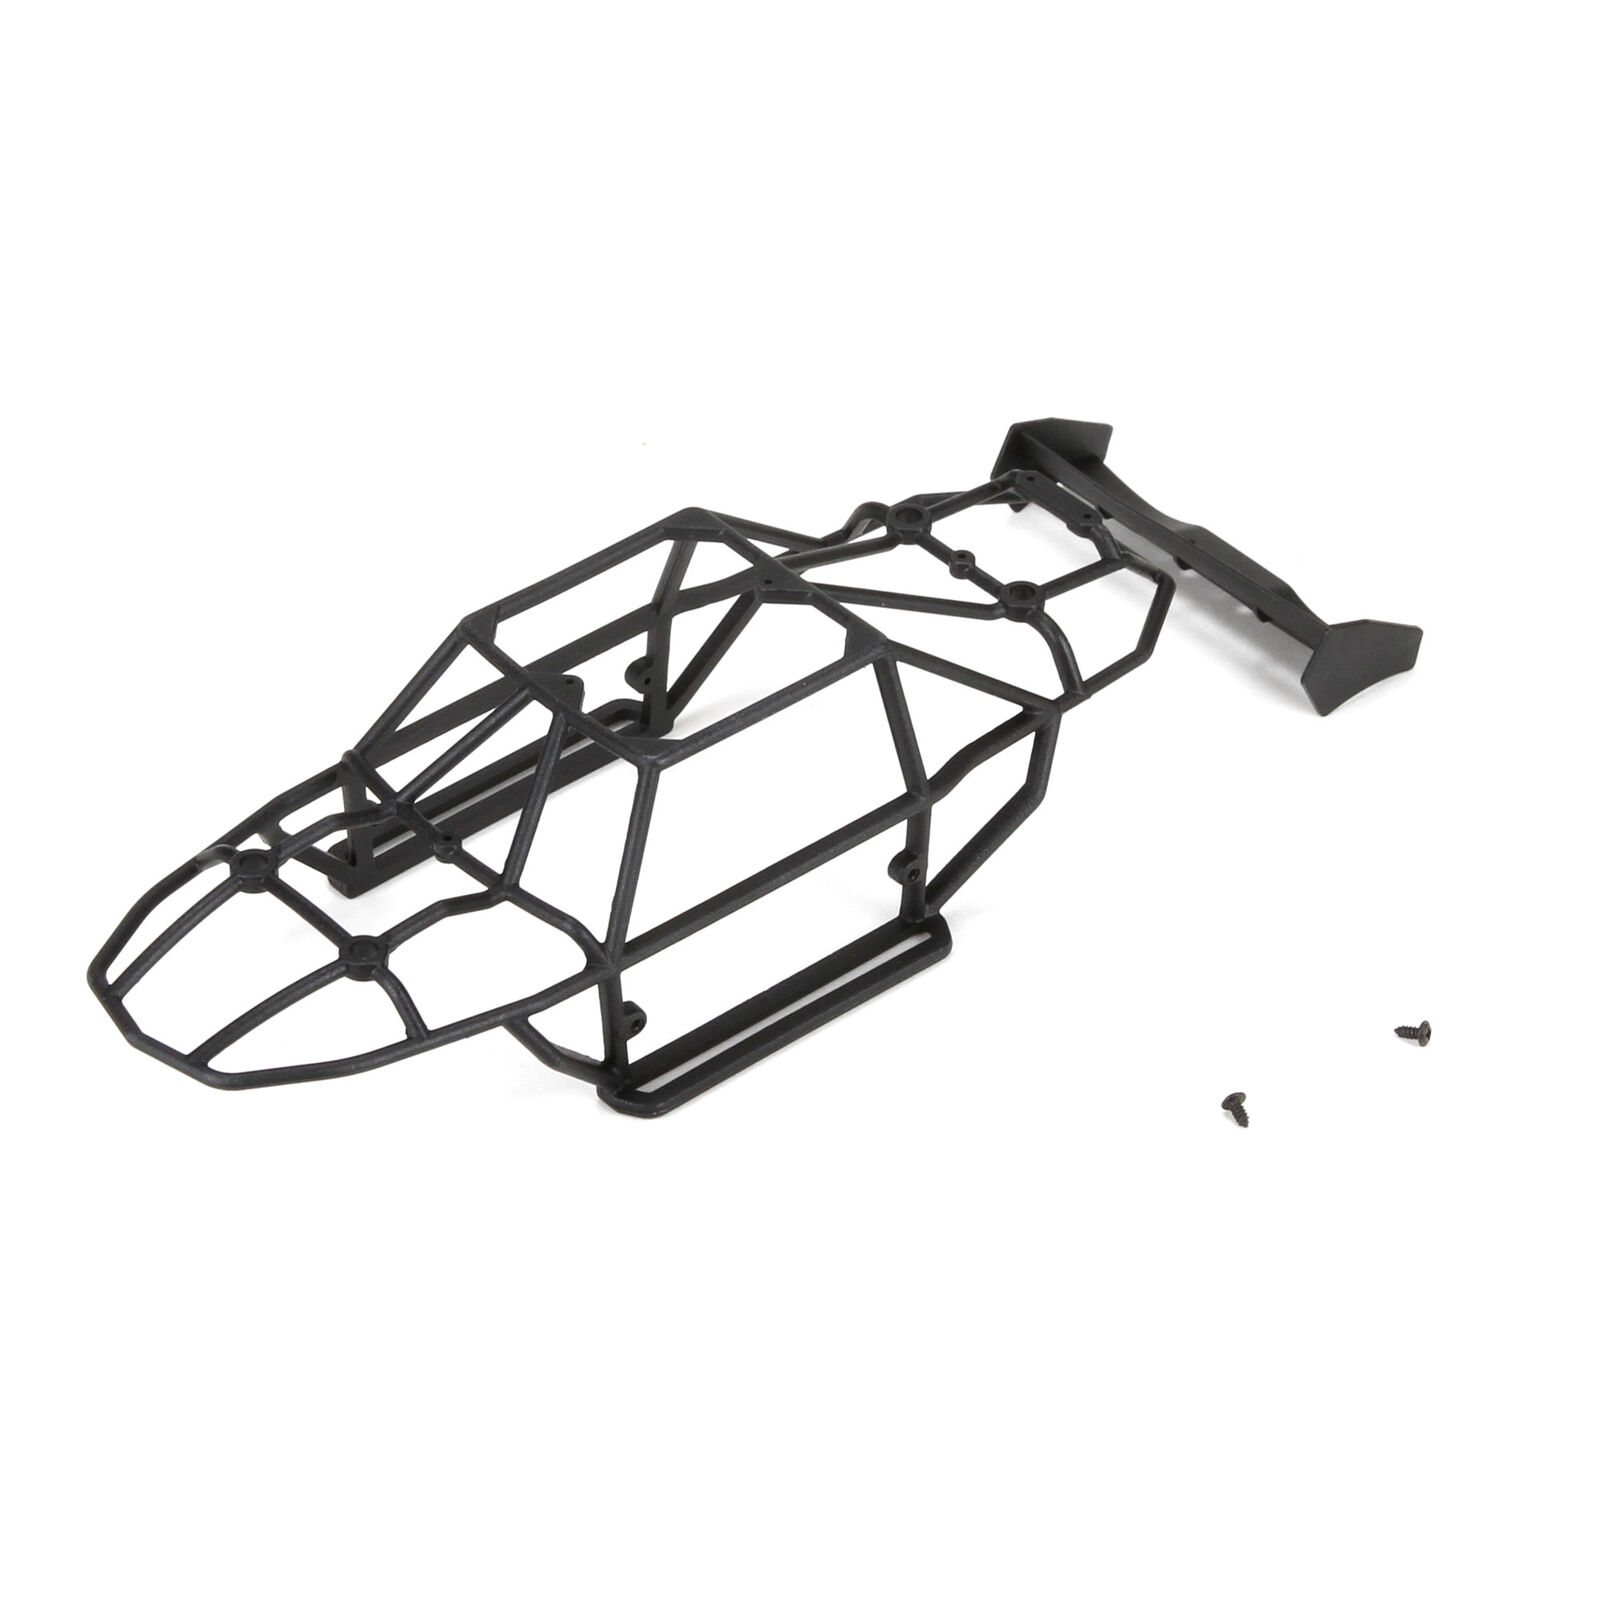 1/24 Cage and Wing Set: Roost